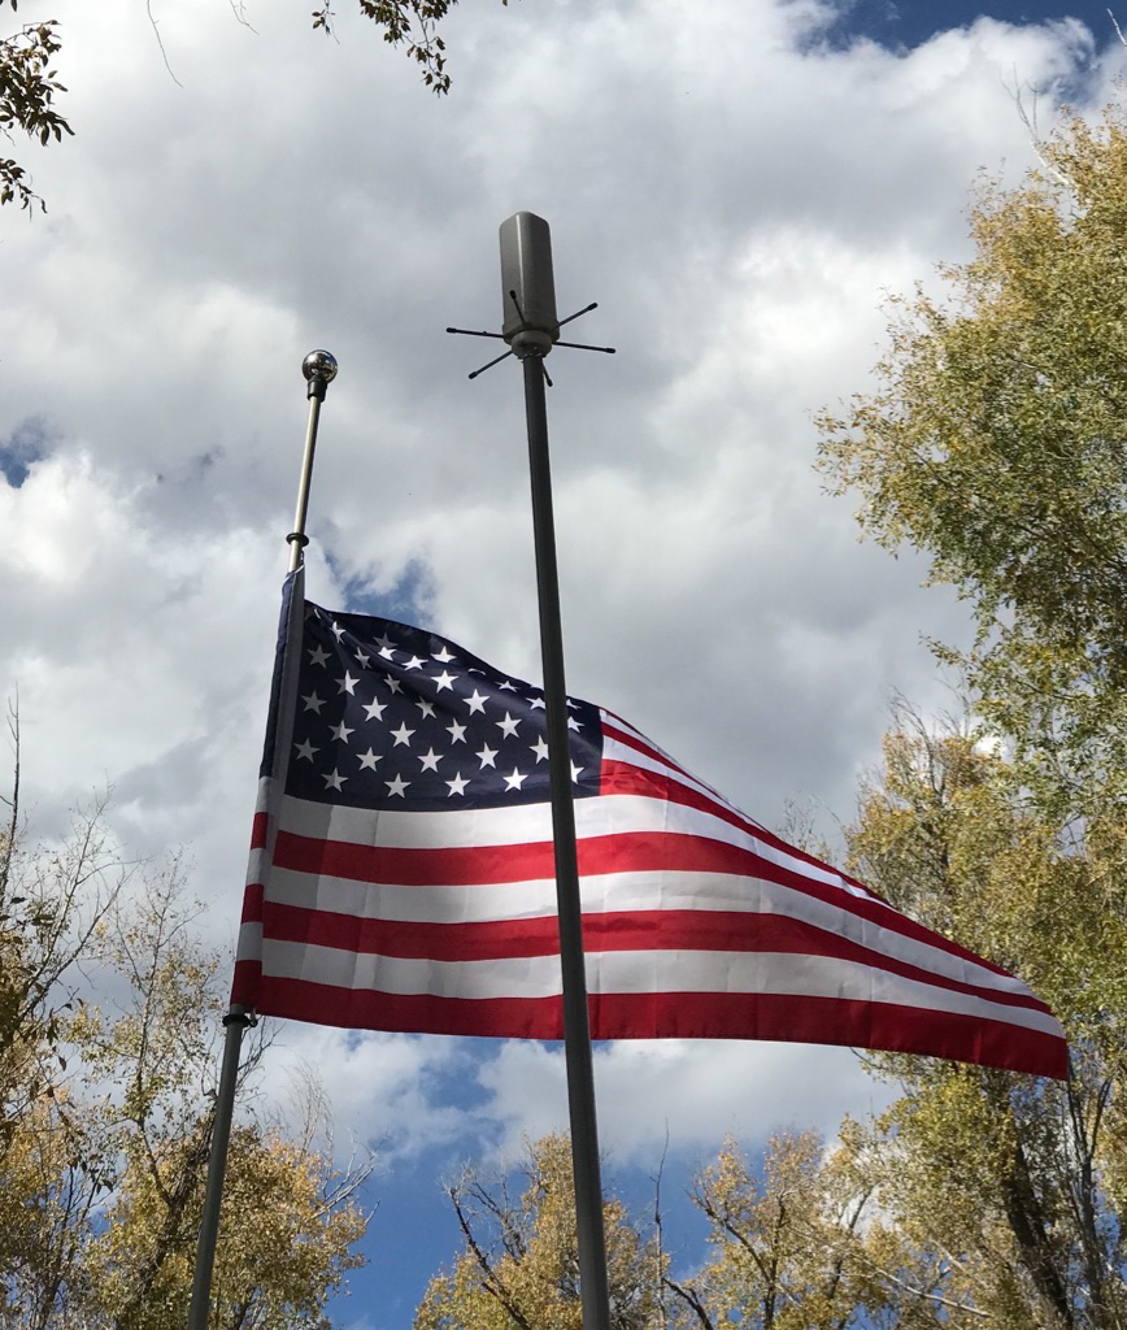 Click image for larger version  Name:Flag & Antenna.jpg Views:14 Size:916.5 KB ID:324969